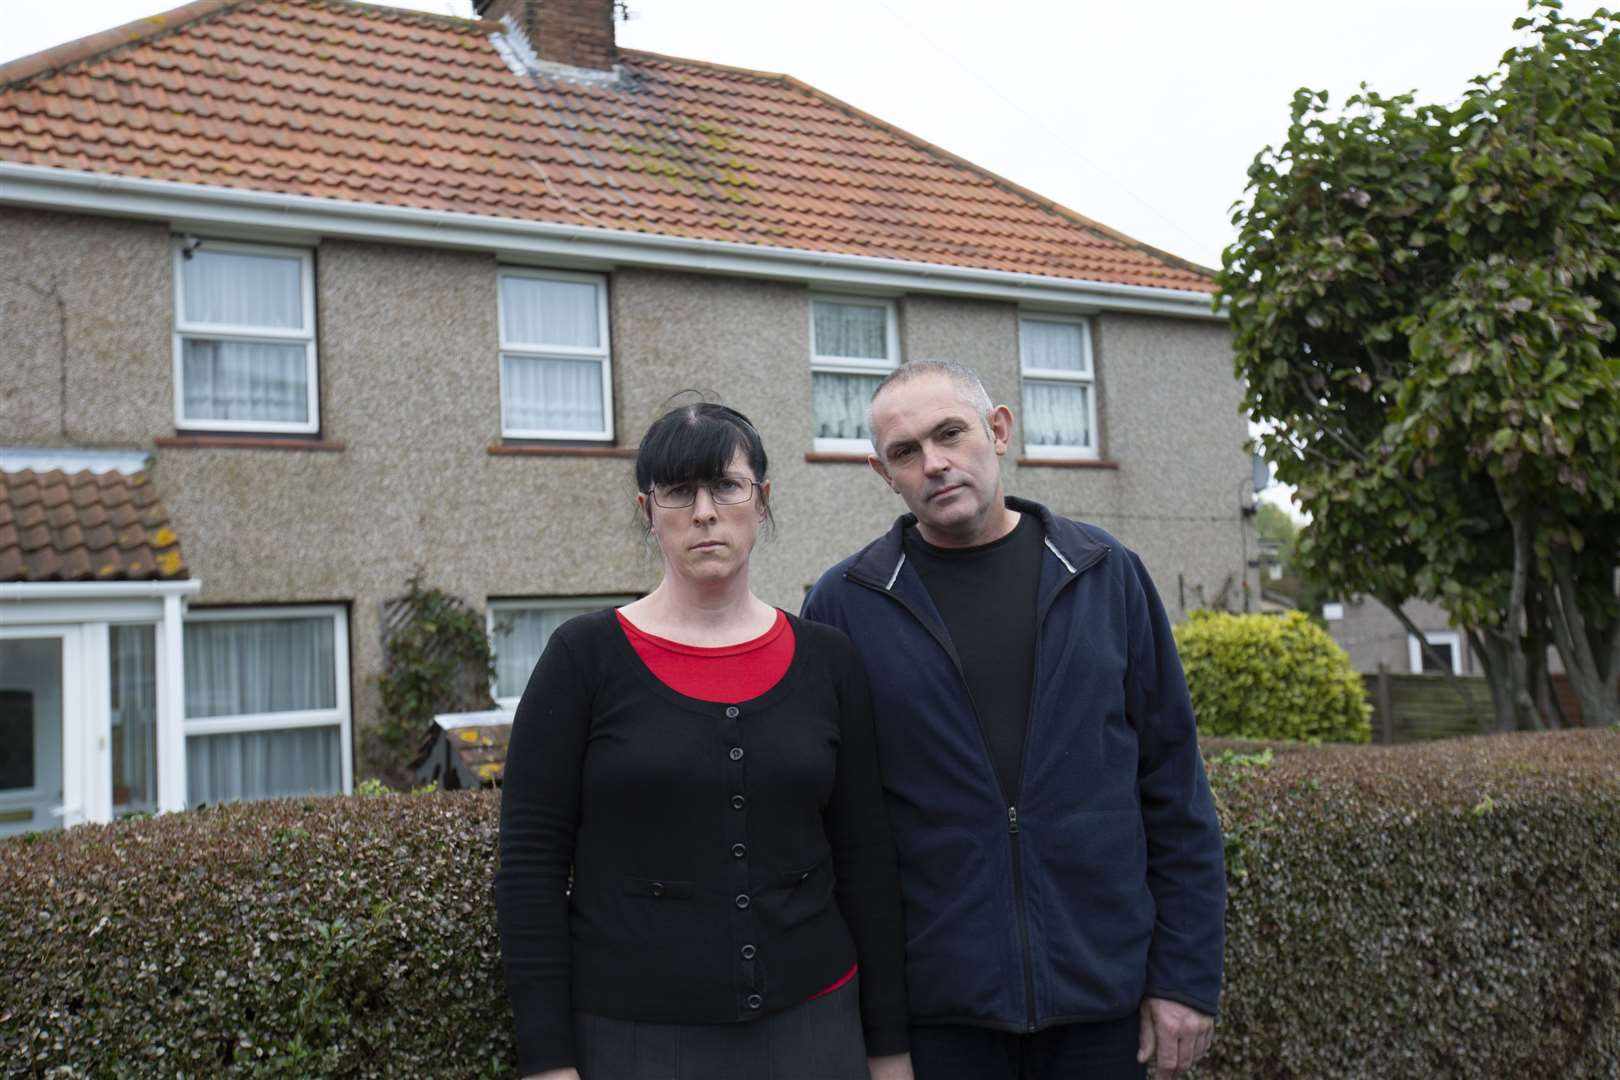 Elaine and Mark Burrows will share their story on TV tonight Picture: 5STAR